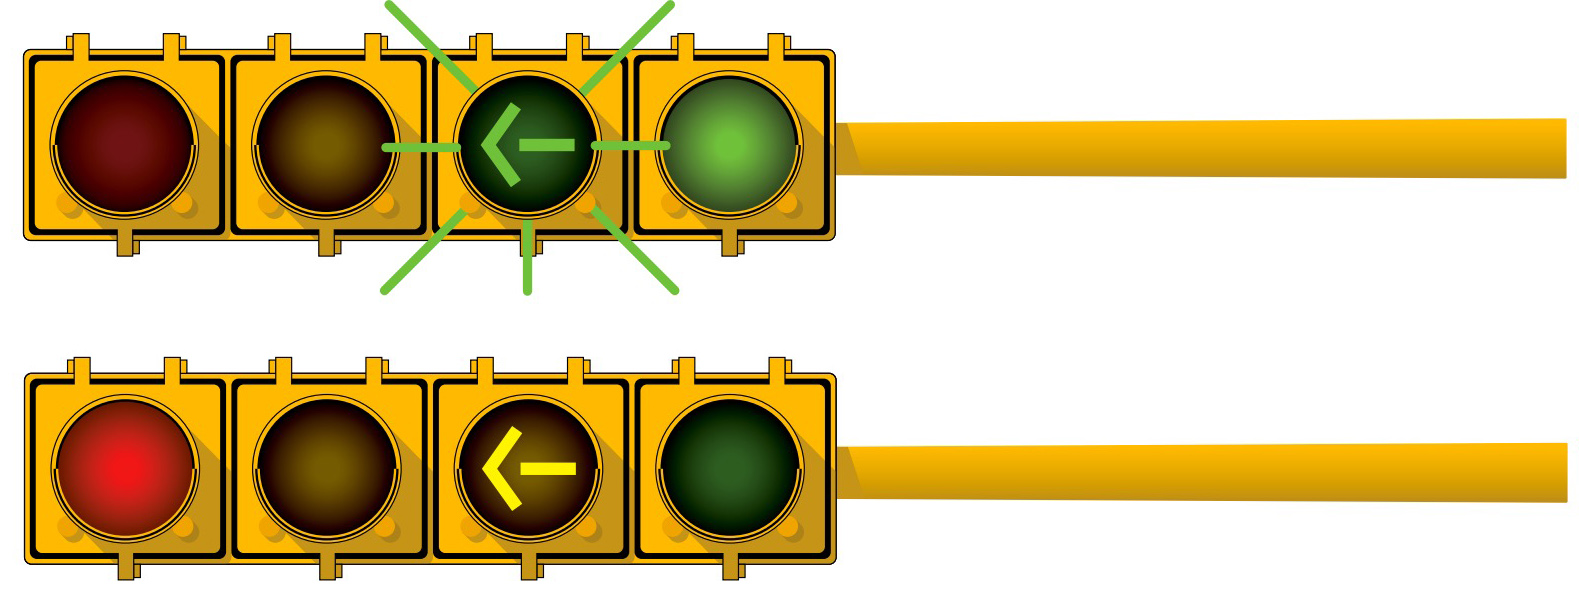 When Approaching A Red Or Green Light And A Flashing Green (left Turn)  Arrow, You May Proceed In The Direction Of The Green Arrow.